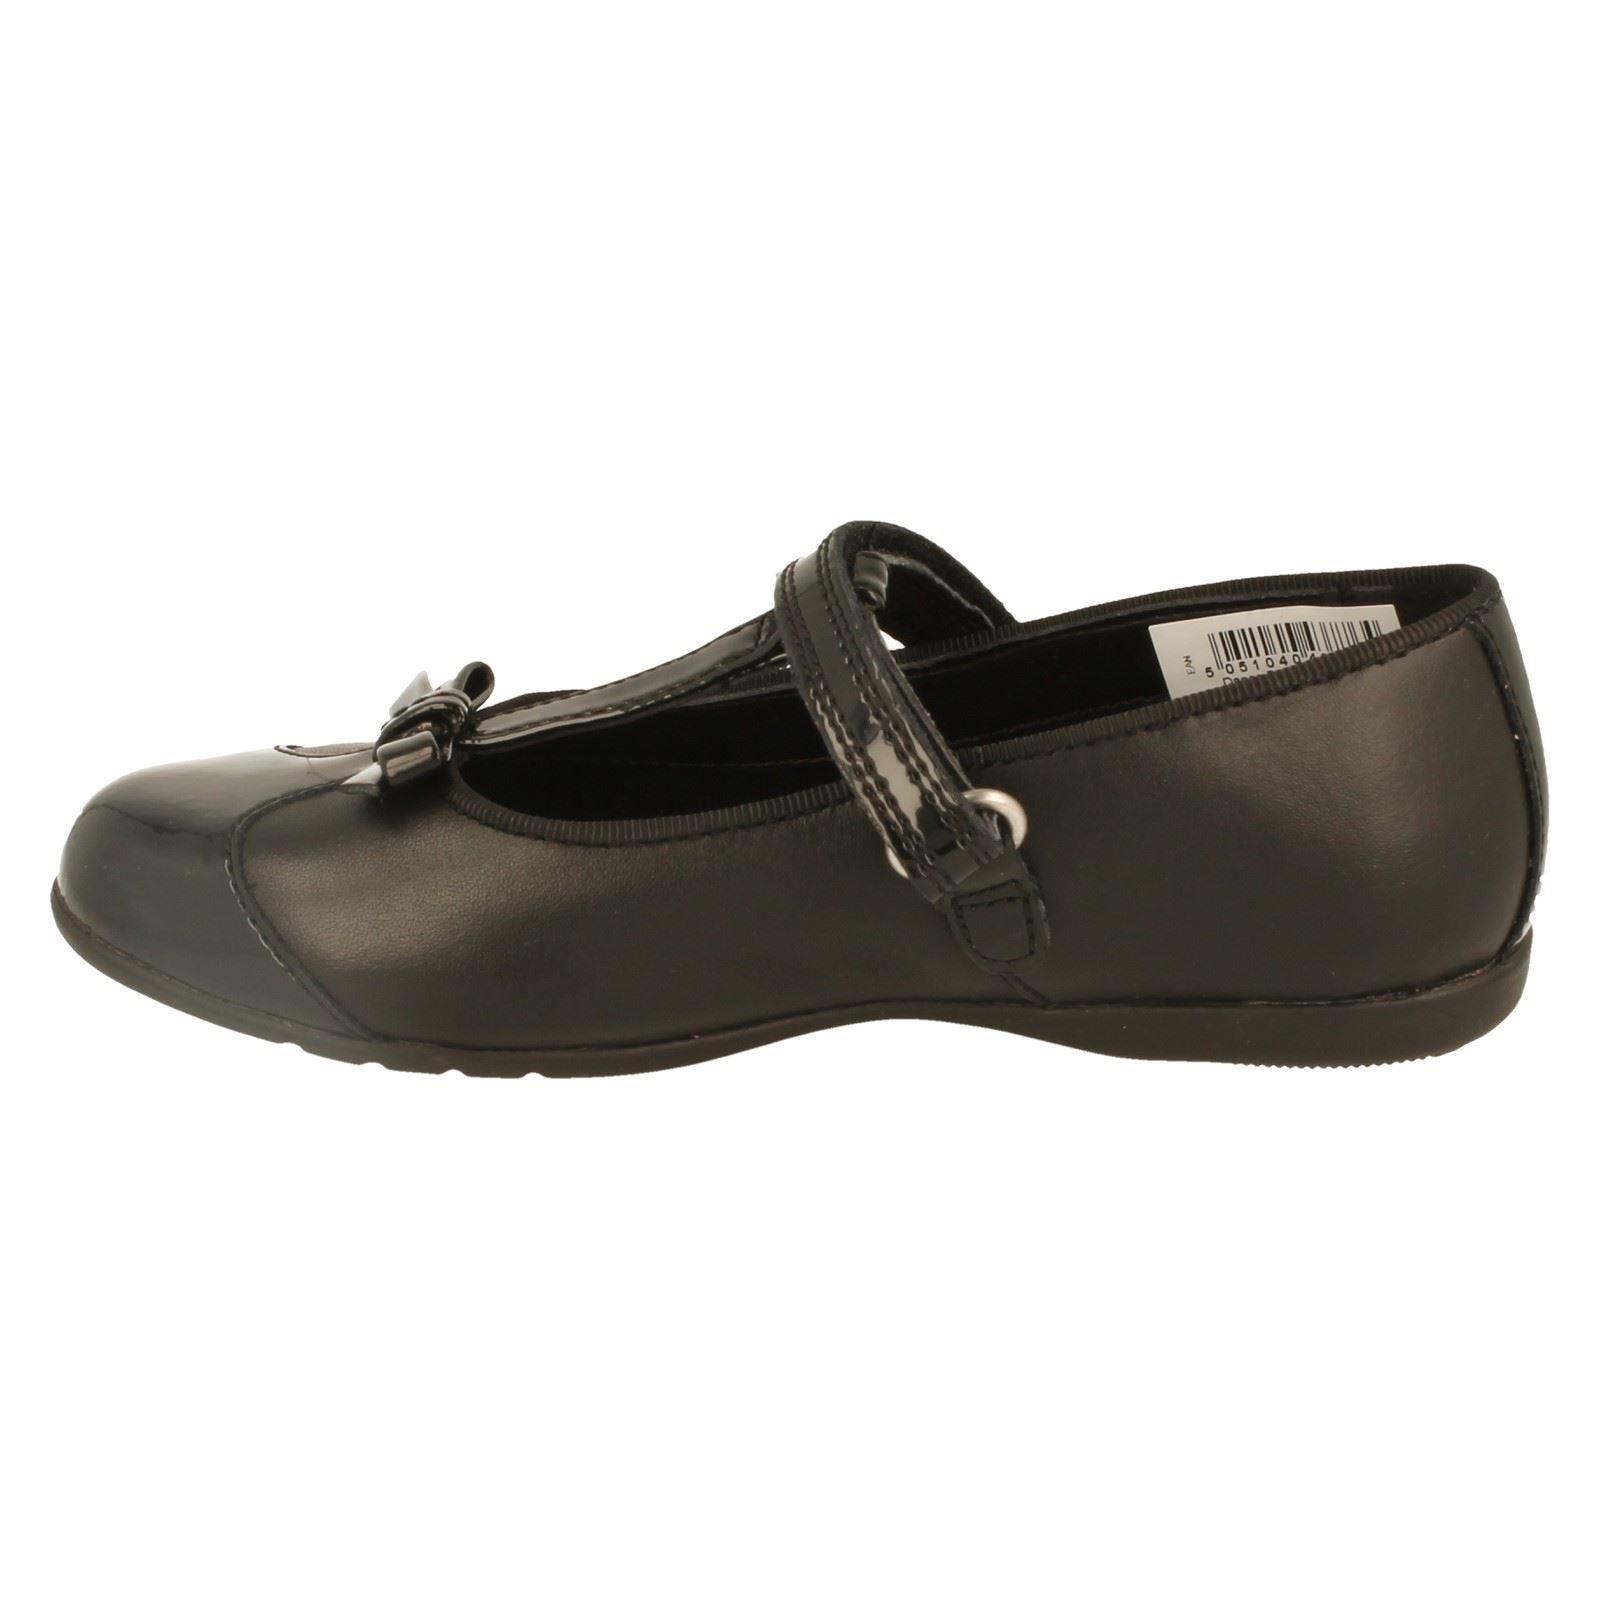 Girls Clarks Smart Shoes The Style Dance Bow -W